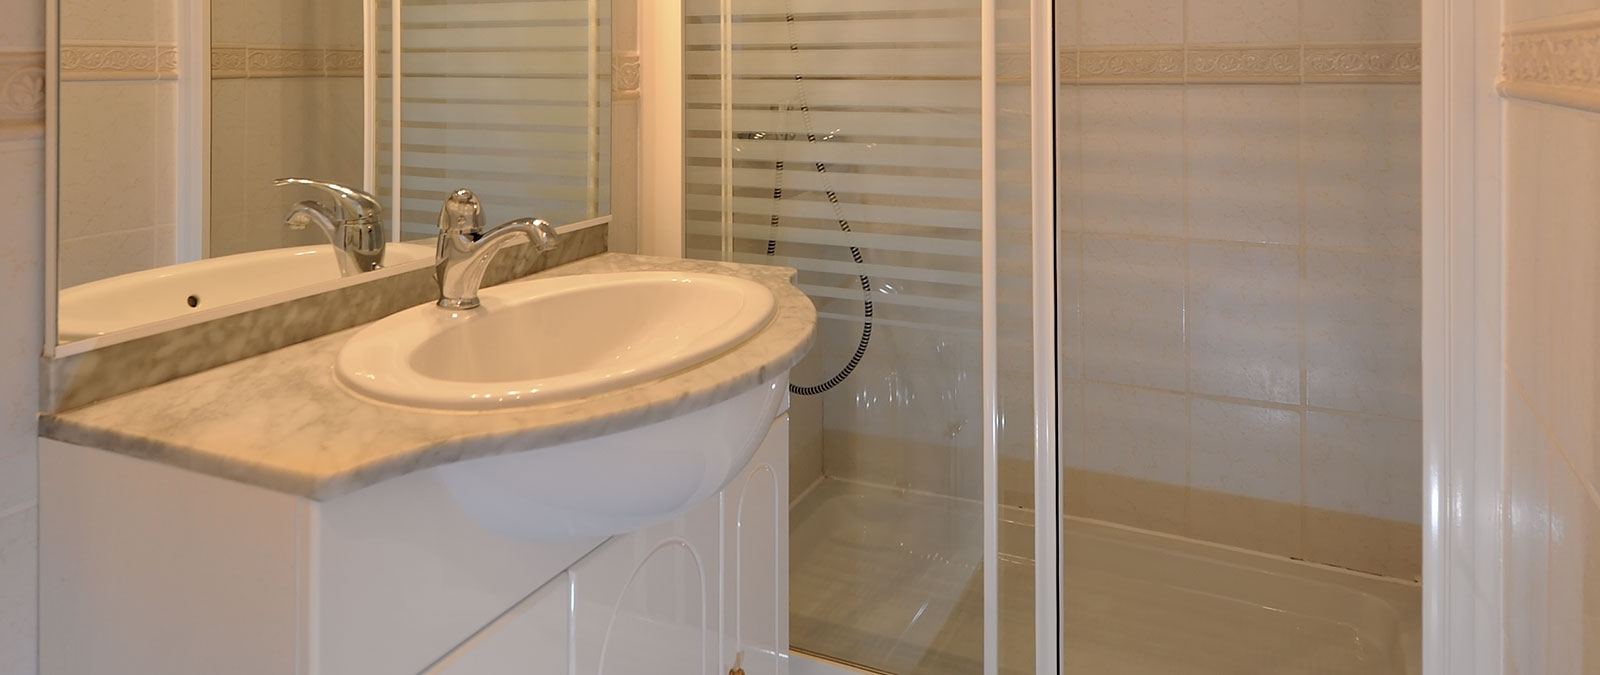 Bathroom with shower Brown naturist studio flat rental